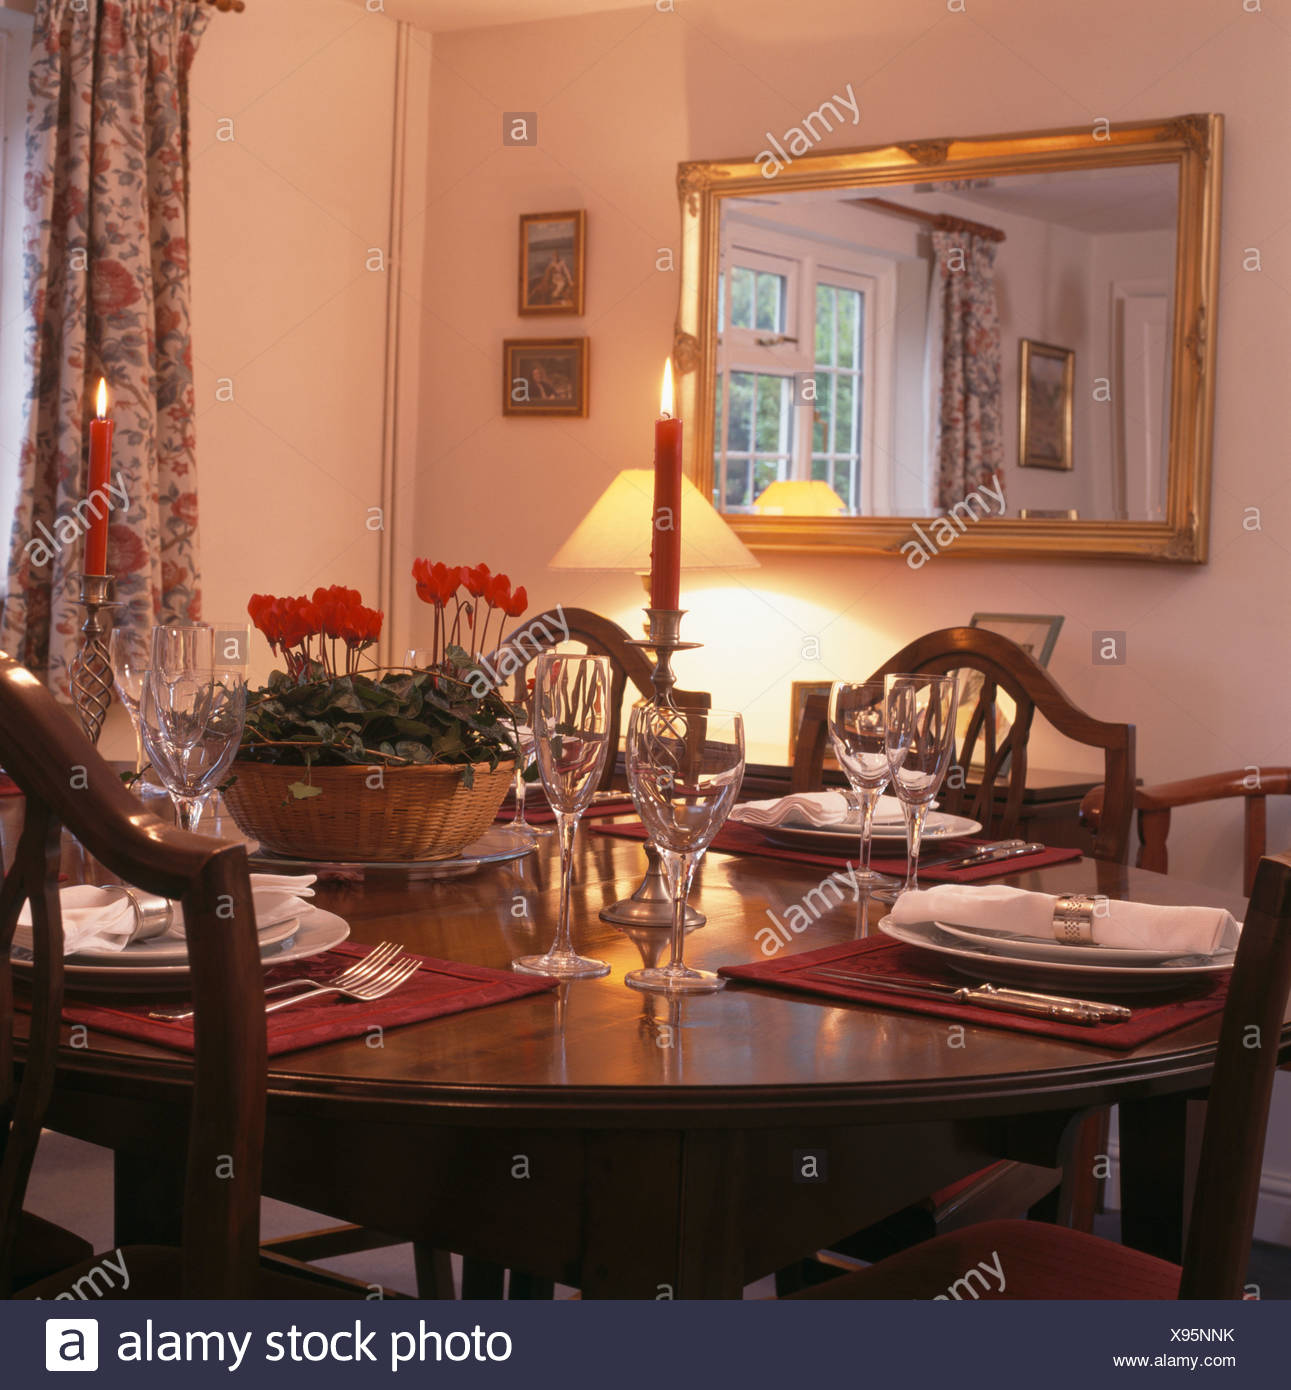 Rectangular Gilt Mirror In Traditional Dining Room With Wine Glasses And Place Settings On Table With Bowl Of Red Cyclamen Stock Photo Alamy